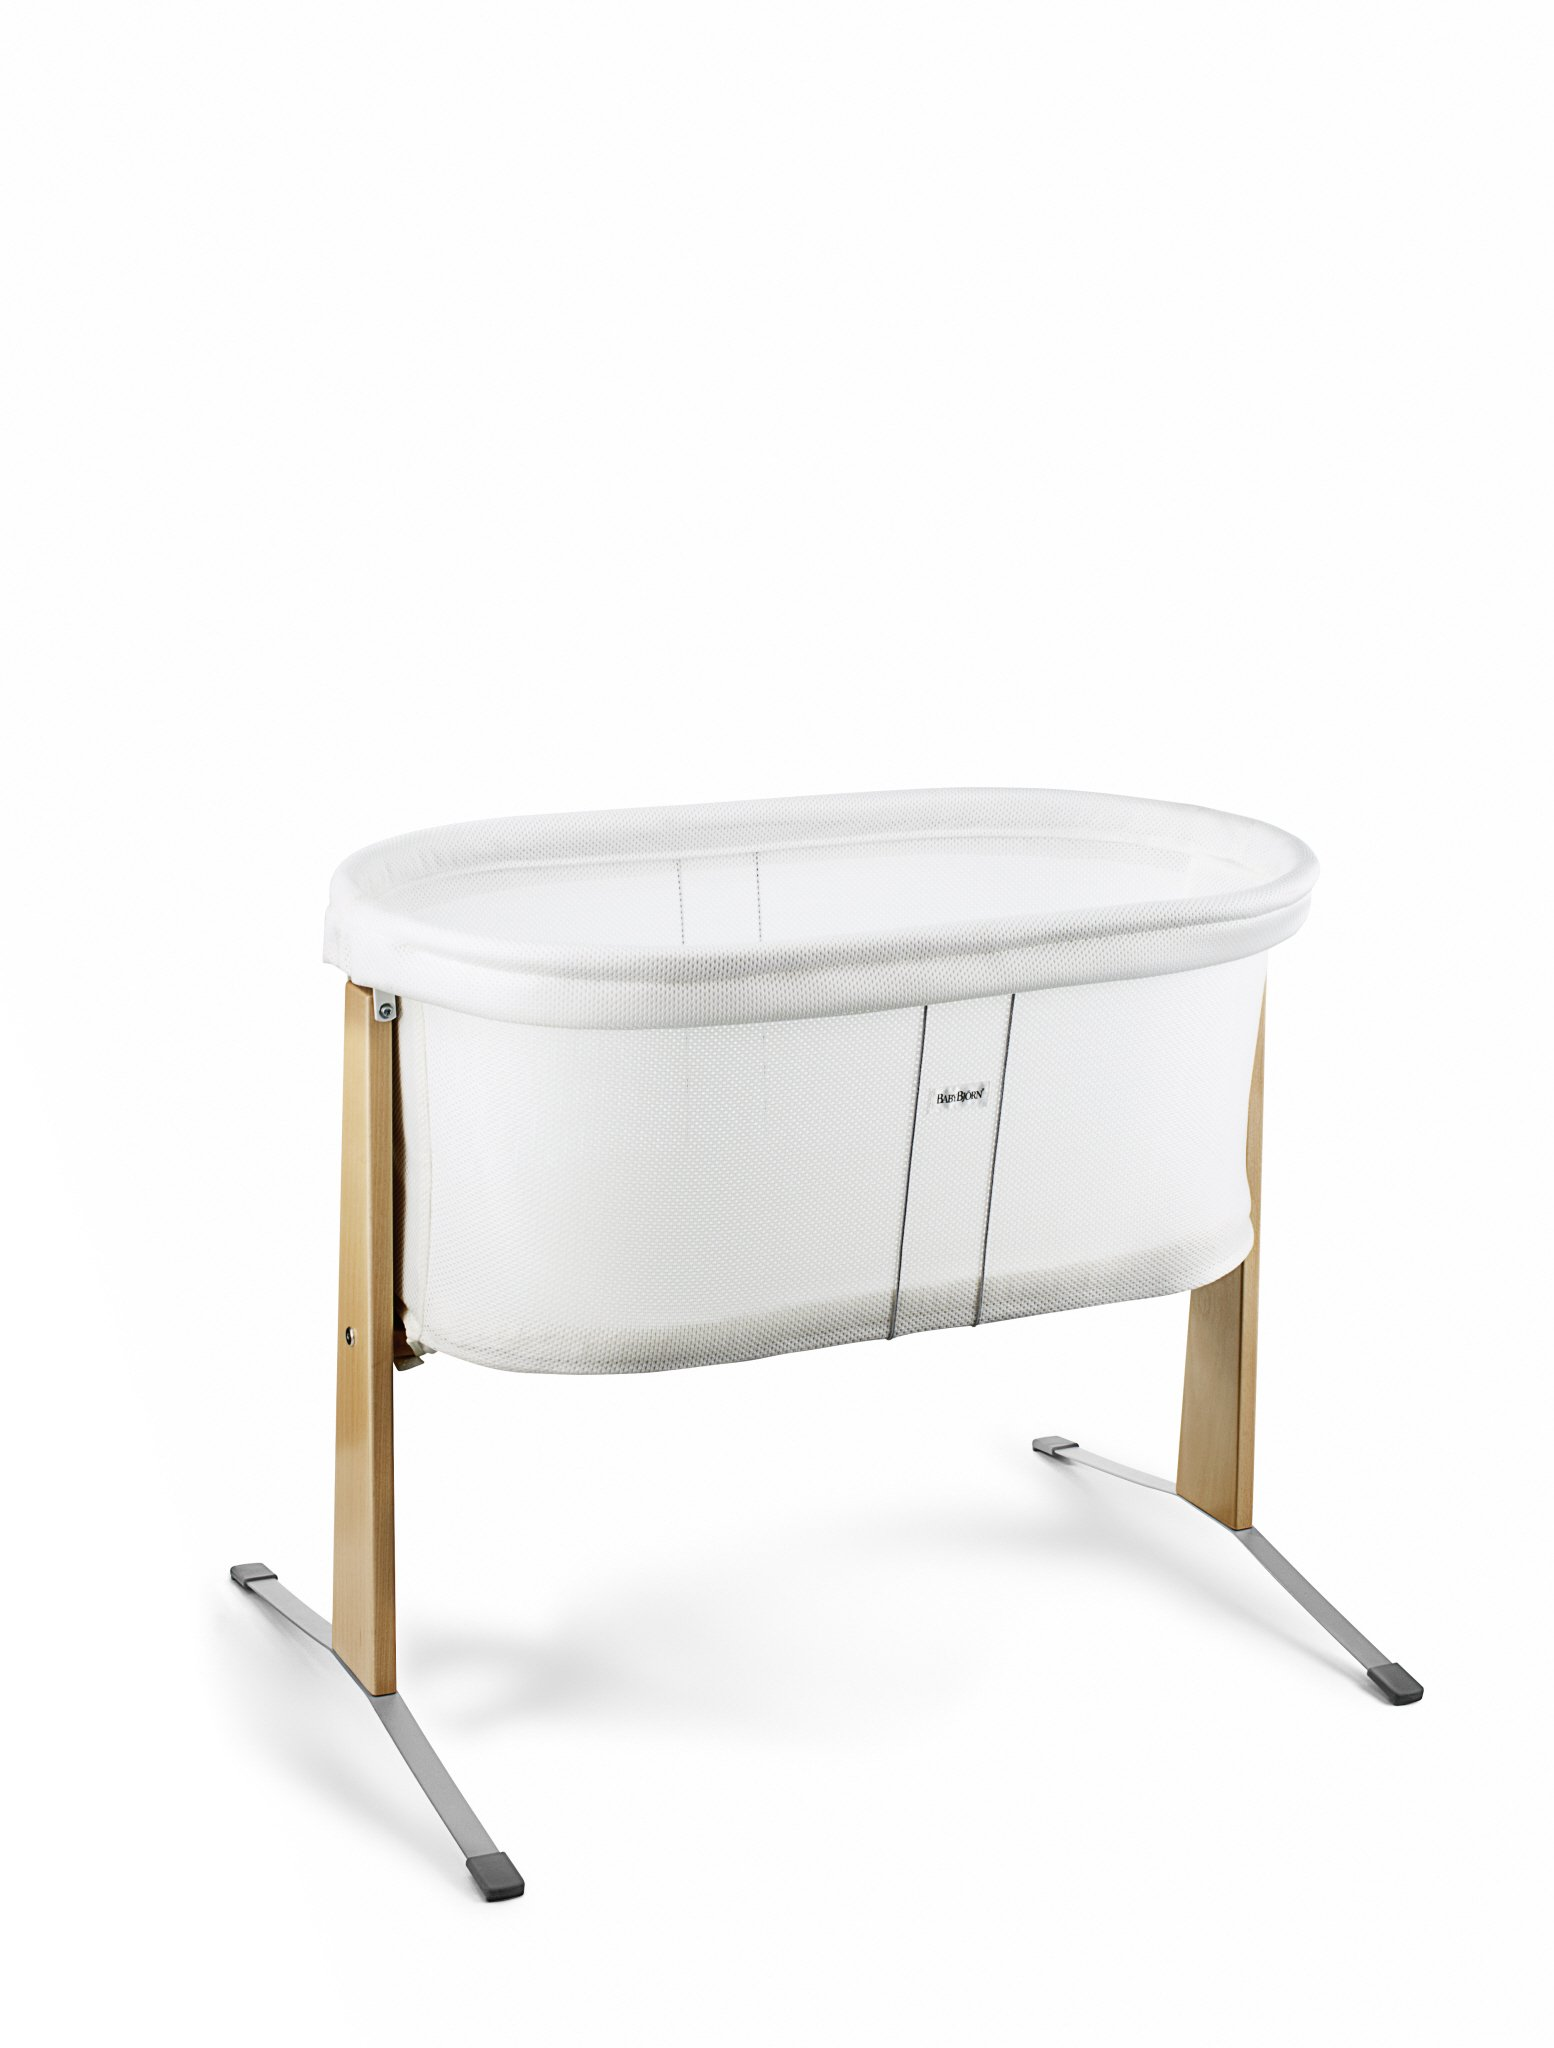 BABYBJÖRN Wiege, Weiss product image